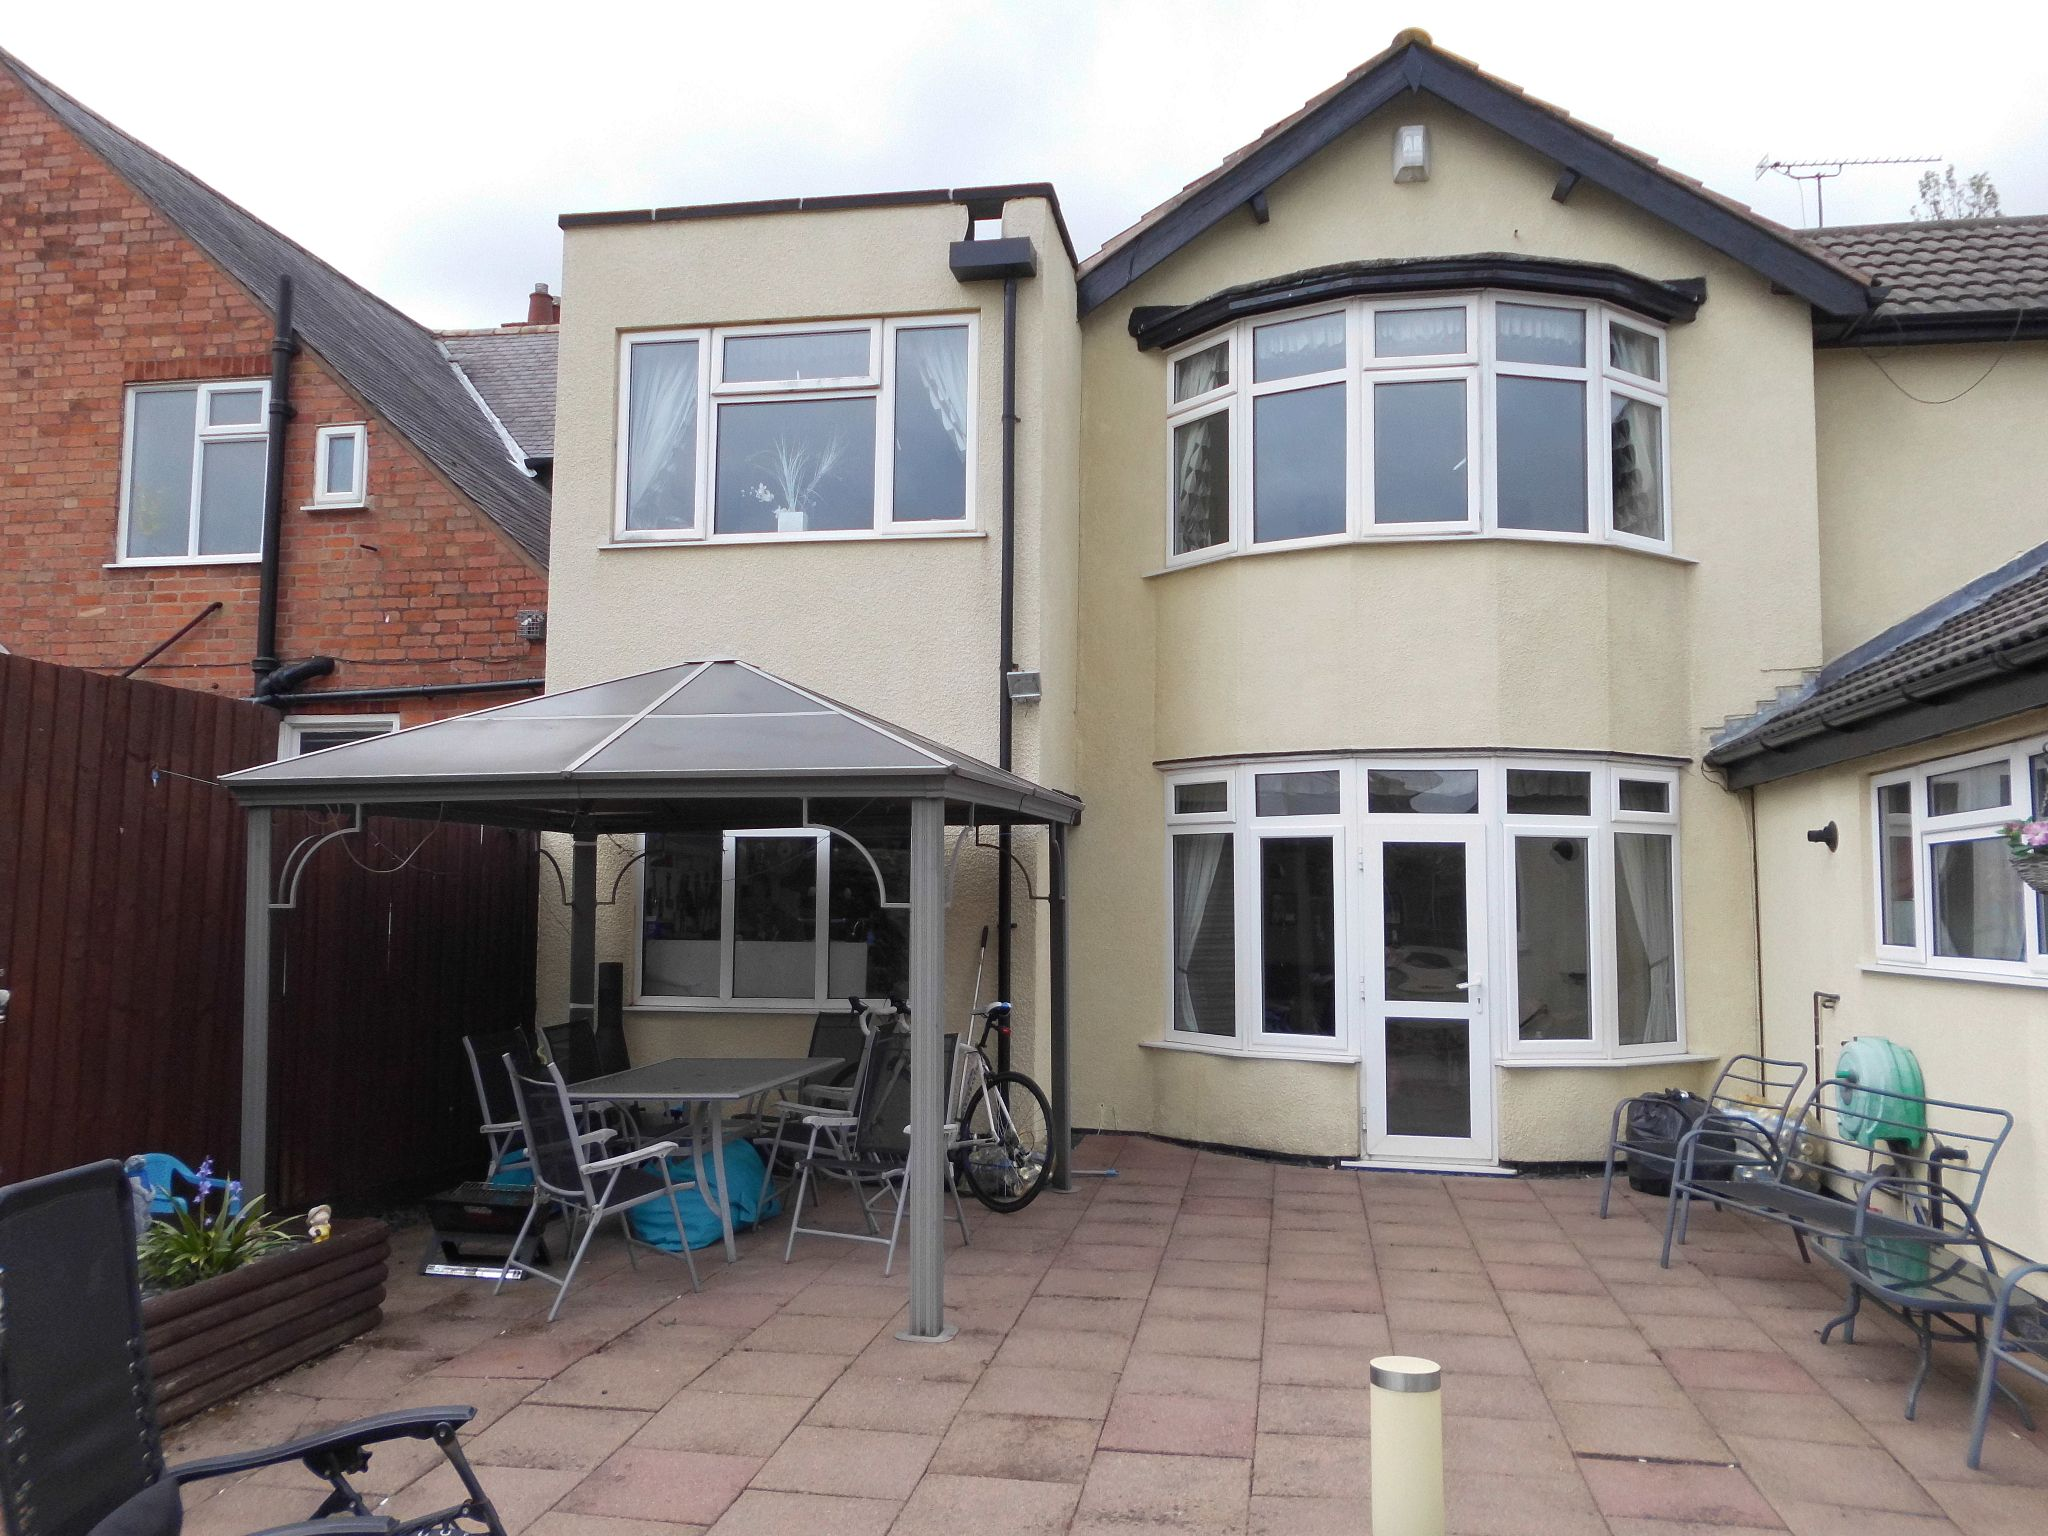 4 bedroom detached house For Sale in Leicester - Photograph 21.